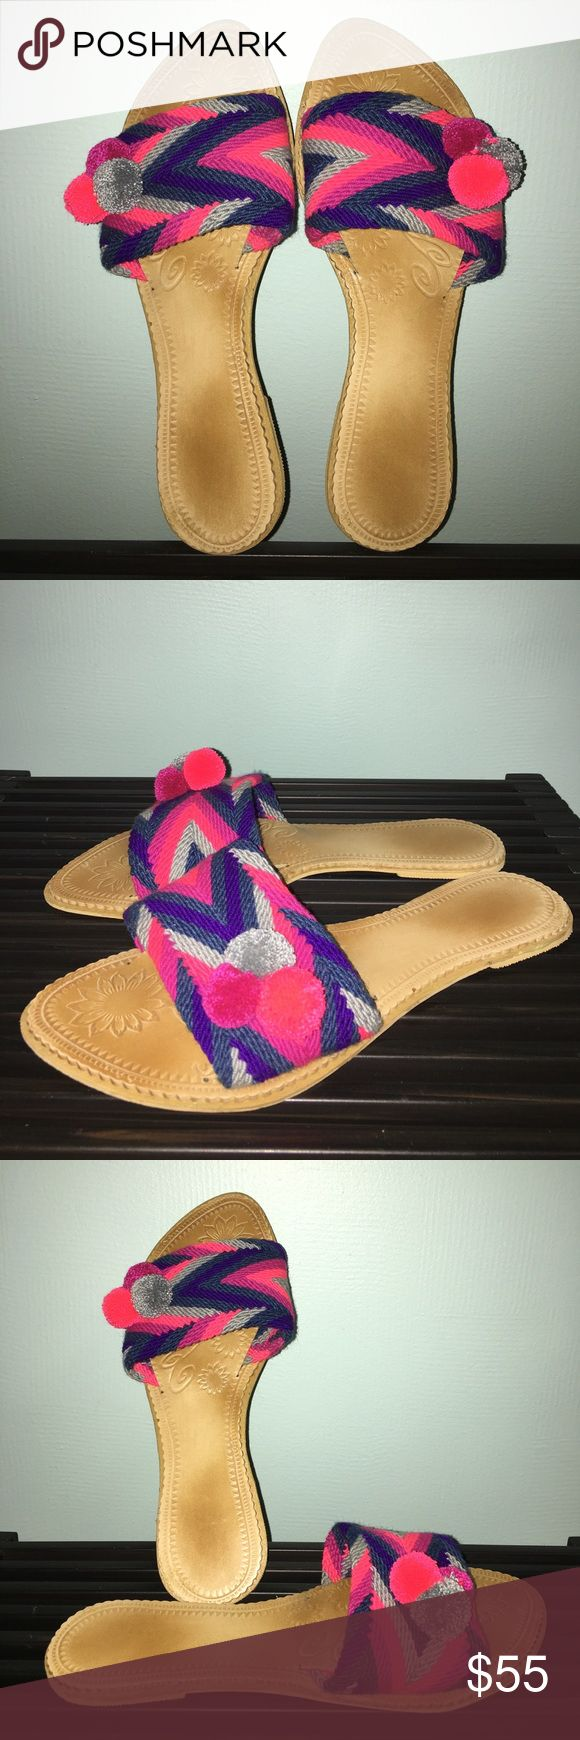 Multicolors pompom flat slide sandals Run small. Please order a size up. Price firm. Won't be reestocked. No holds. Beautiful to the beach and summer. Available only in whole sizes! If you're a half size order a size up. Handmade by colombian indigenous wayuù. handmade Shoes Sandals